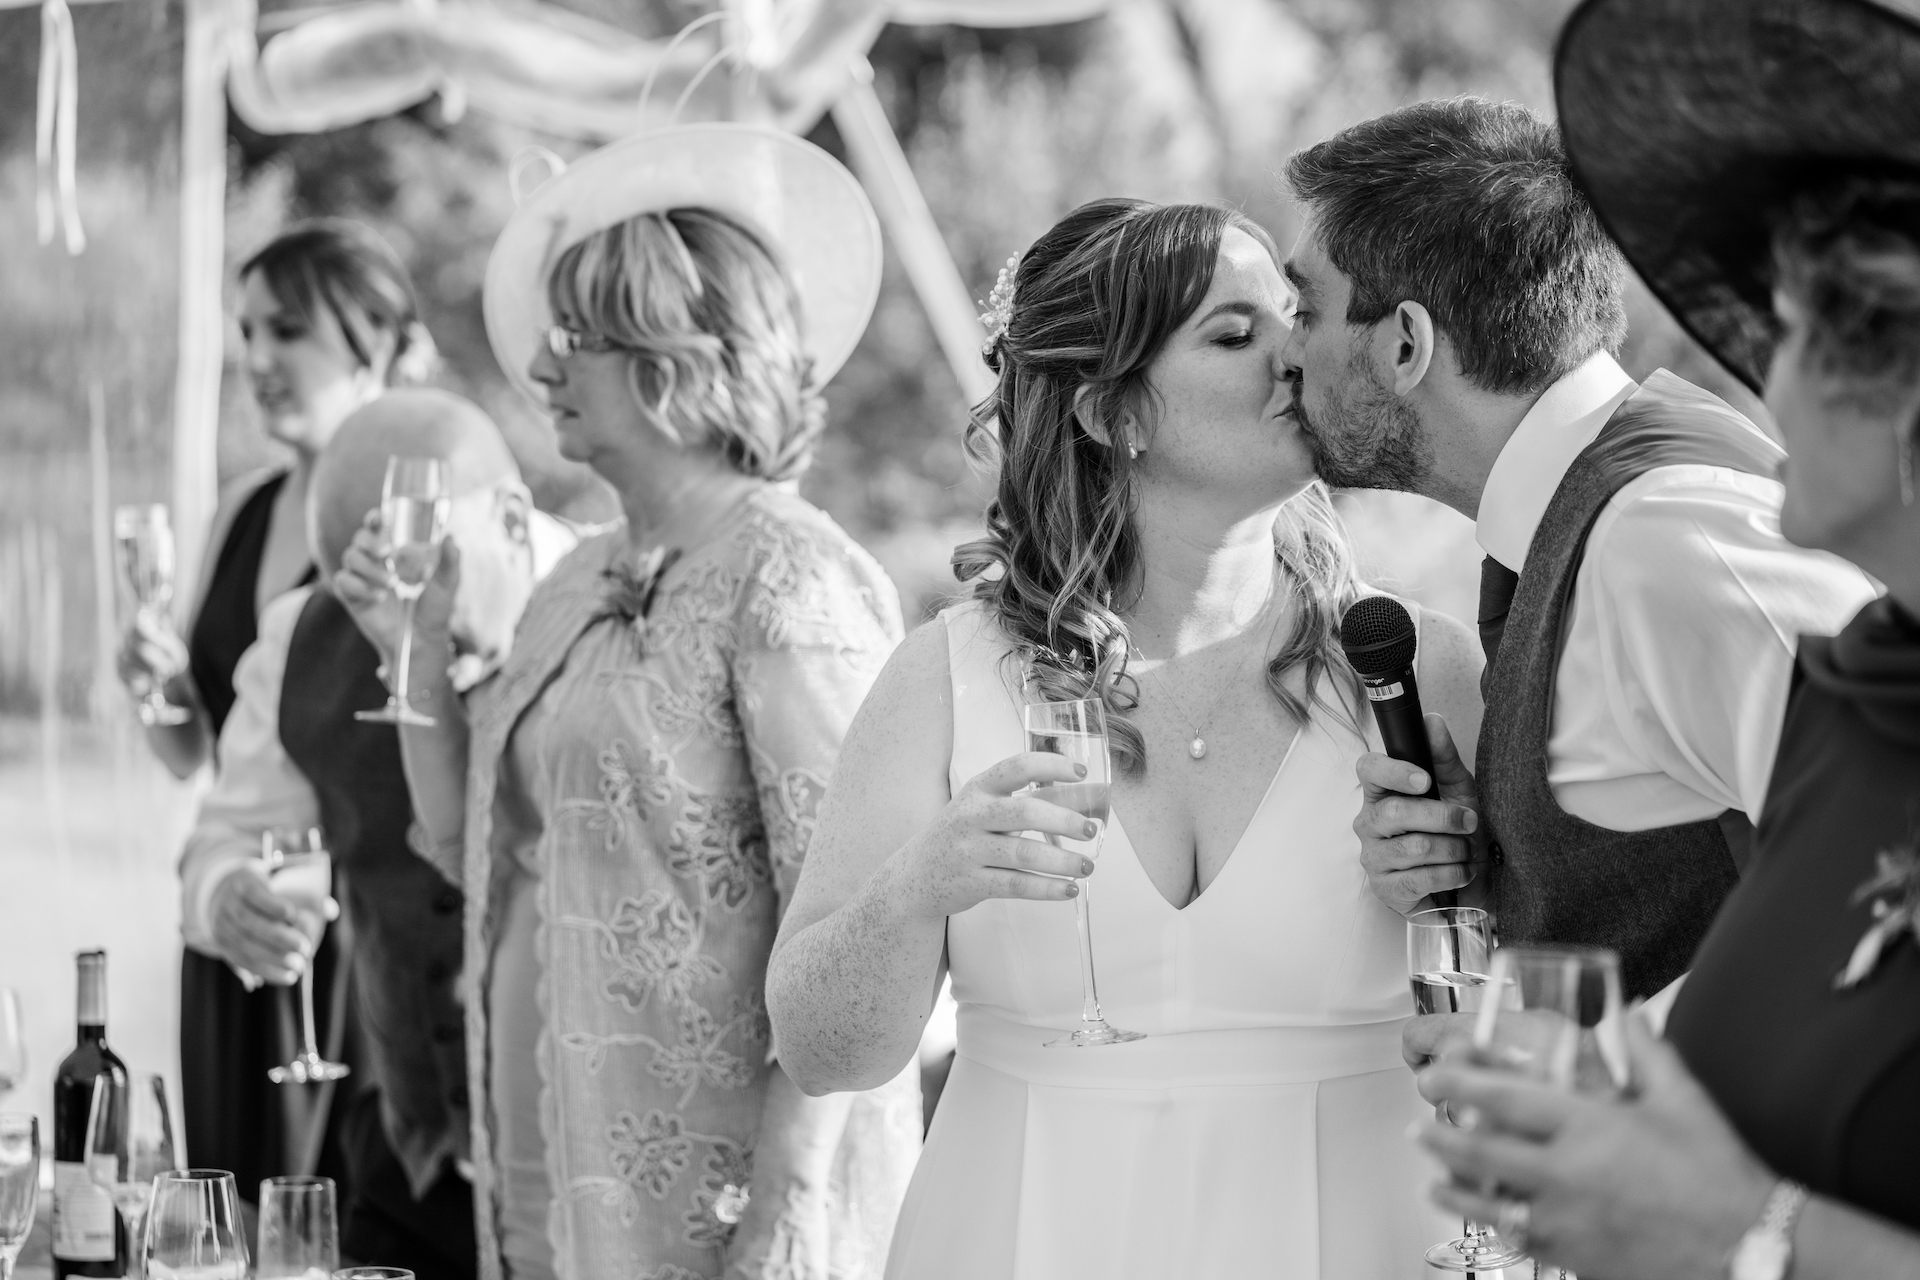 PapaKåta couple Louise & Alex's Sperry Wedding at Elford Hall Garden, Staffordshire captured by Jessica Raphael Photography- A toast to the bride & groom